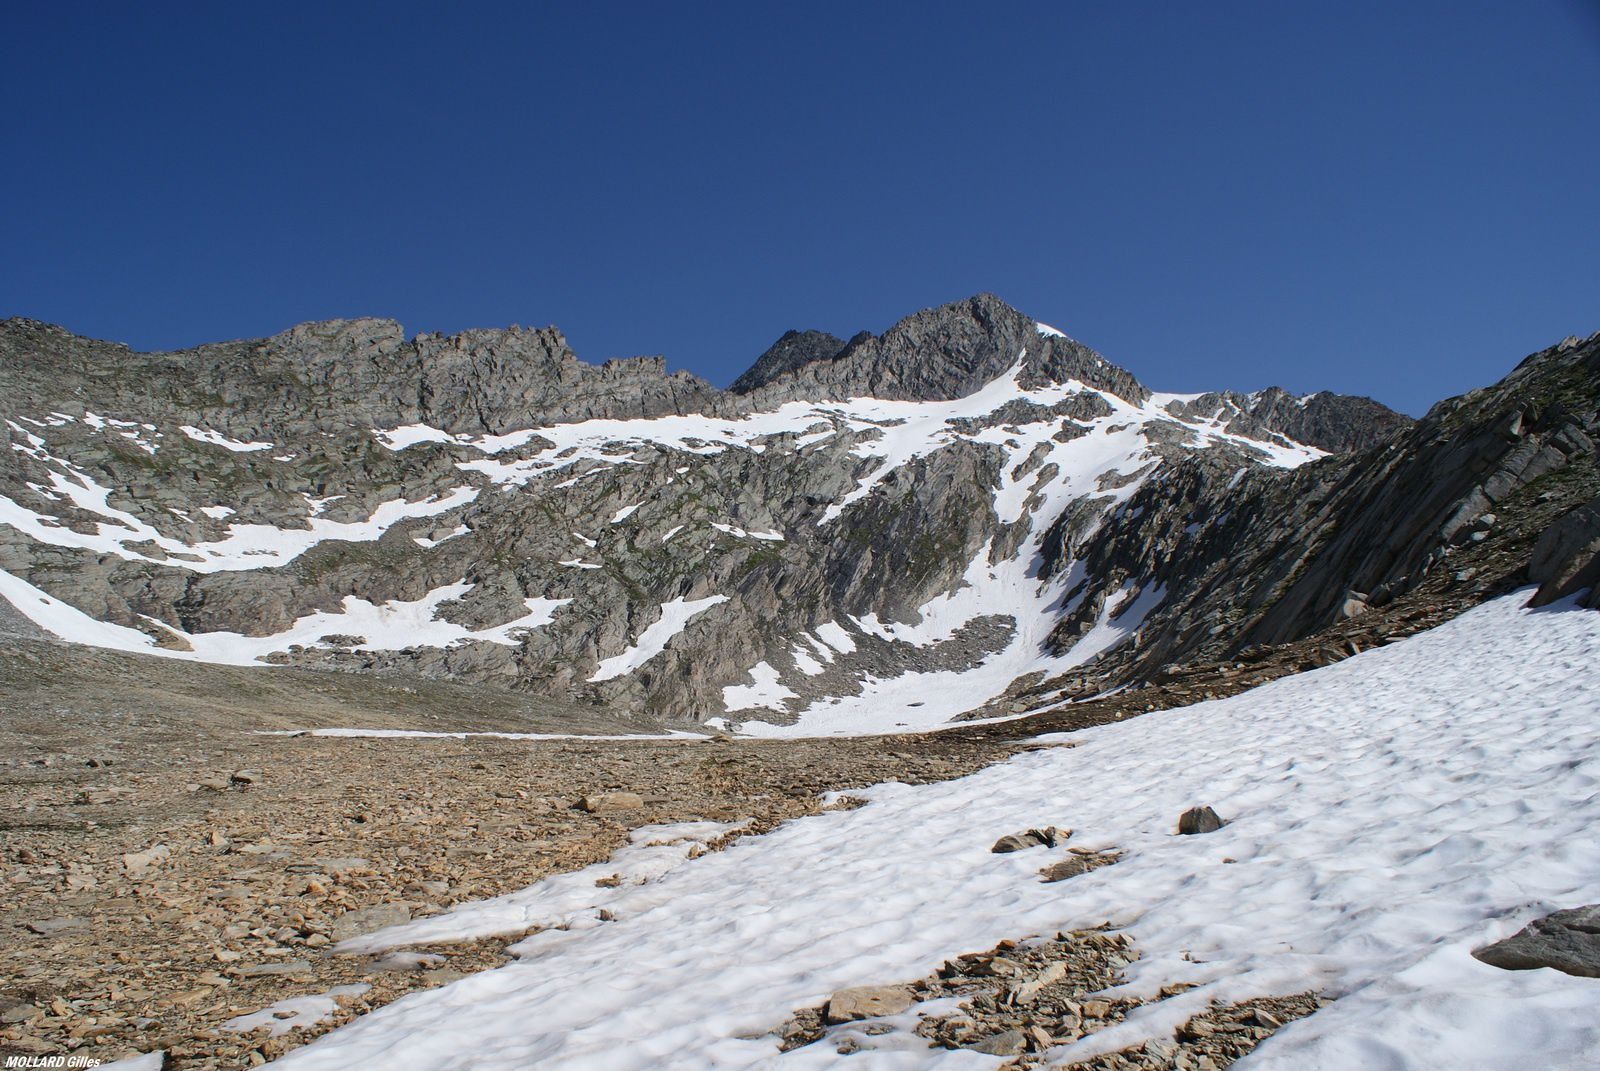 Grand roc et la pointe de l'Echelle 3422m